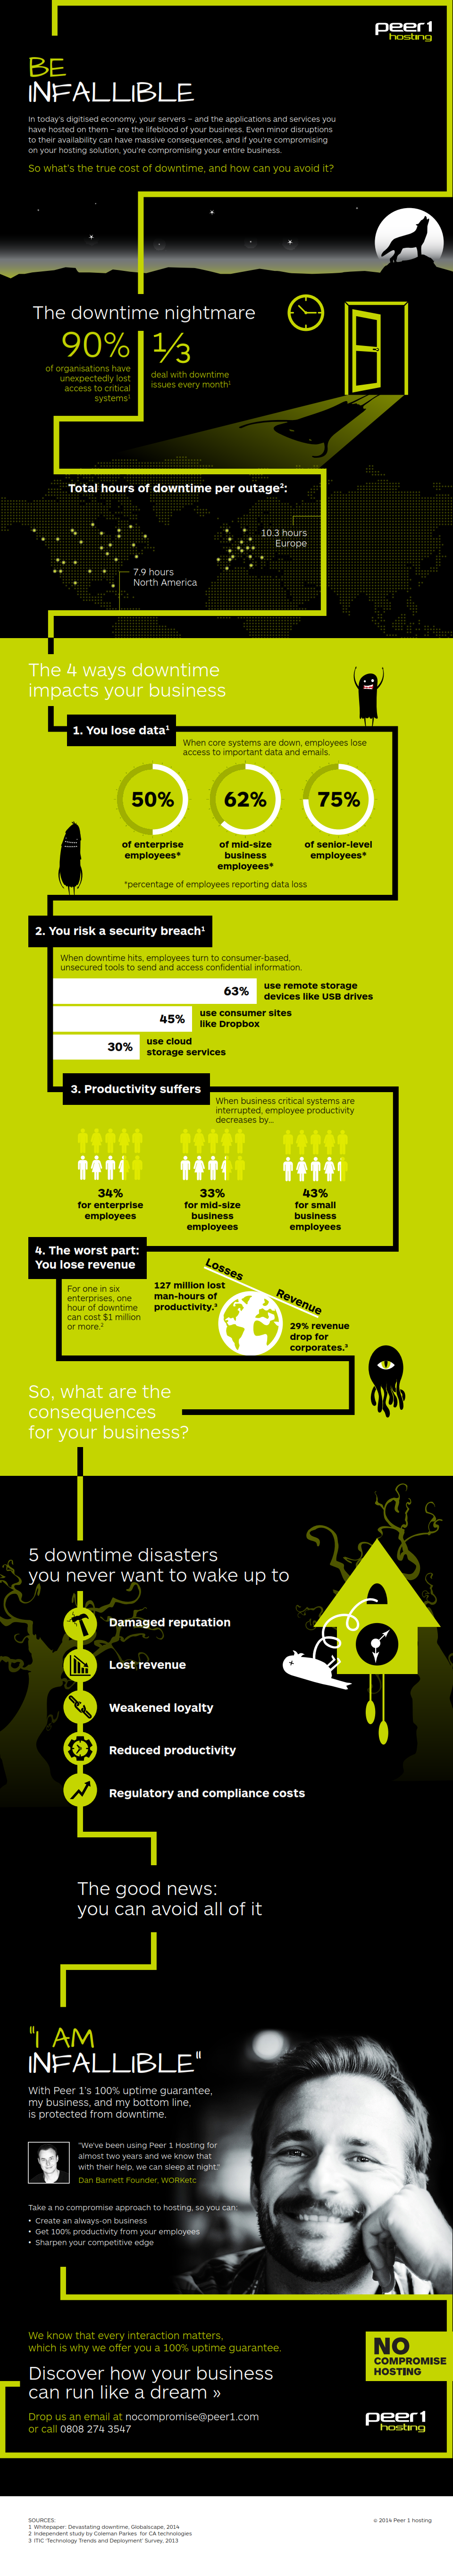 Peer1-Infographic-Be-Infallible_001